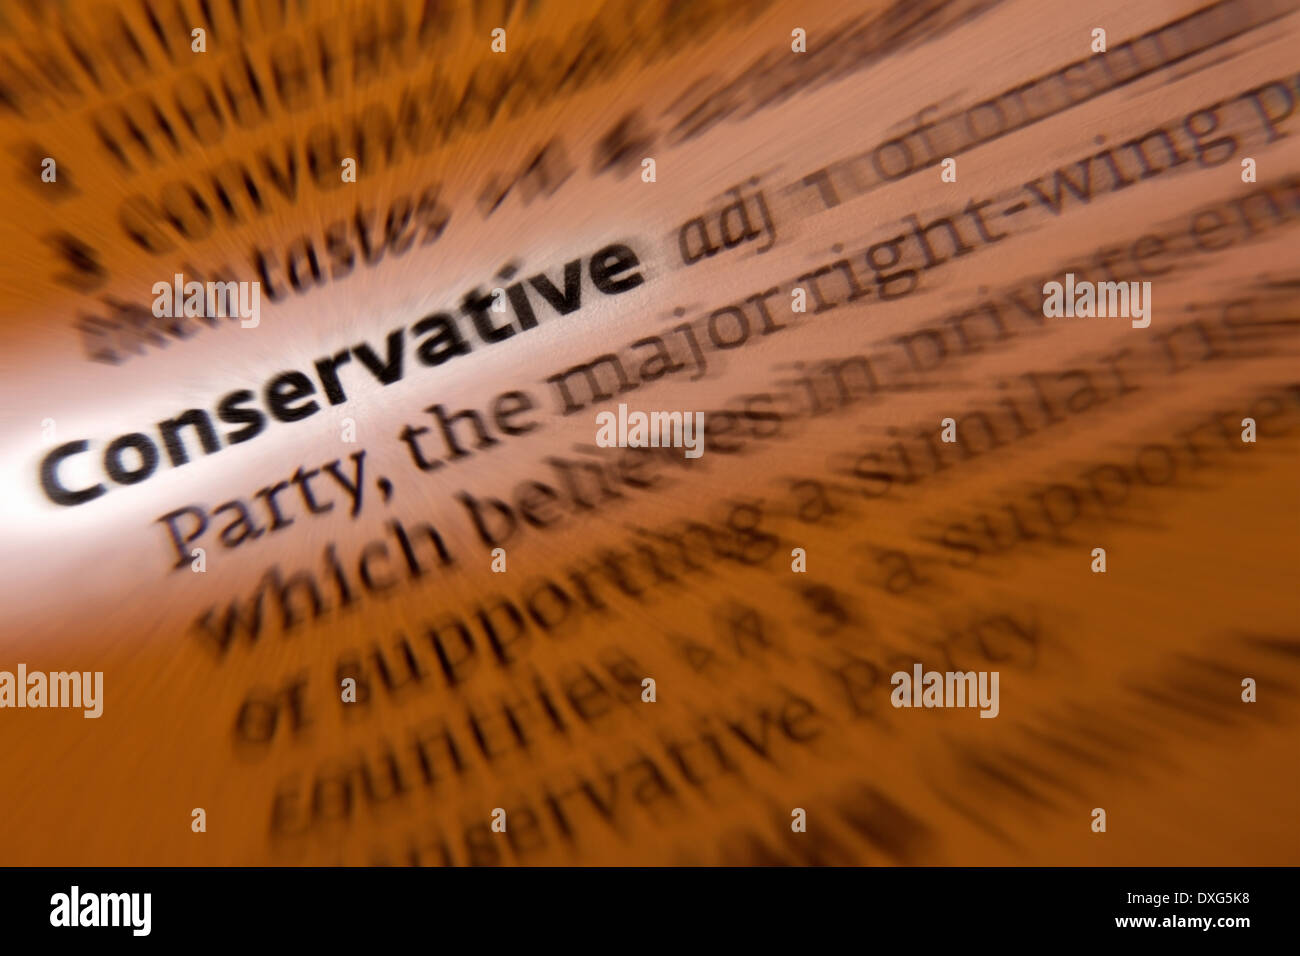 Conservative Party - a major right-of-center British political party - Stock Image